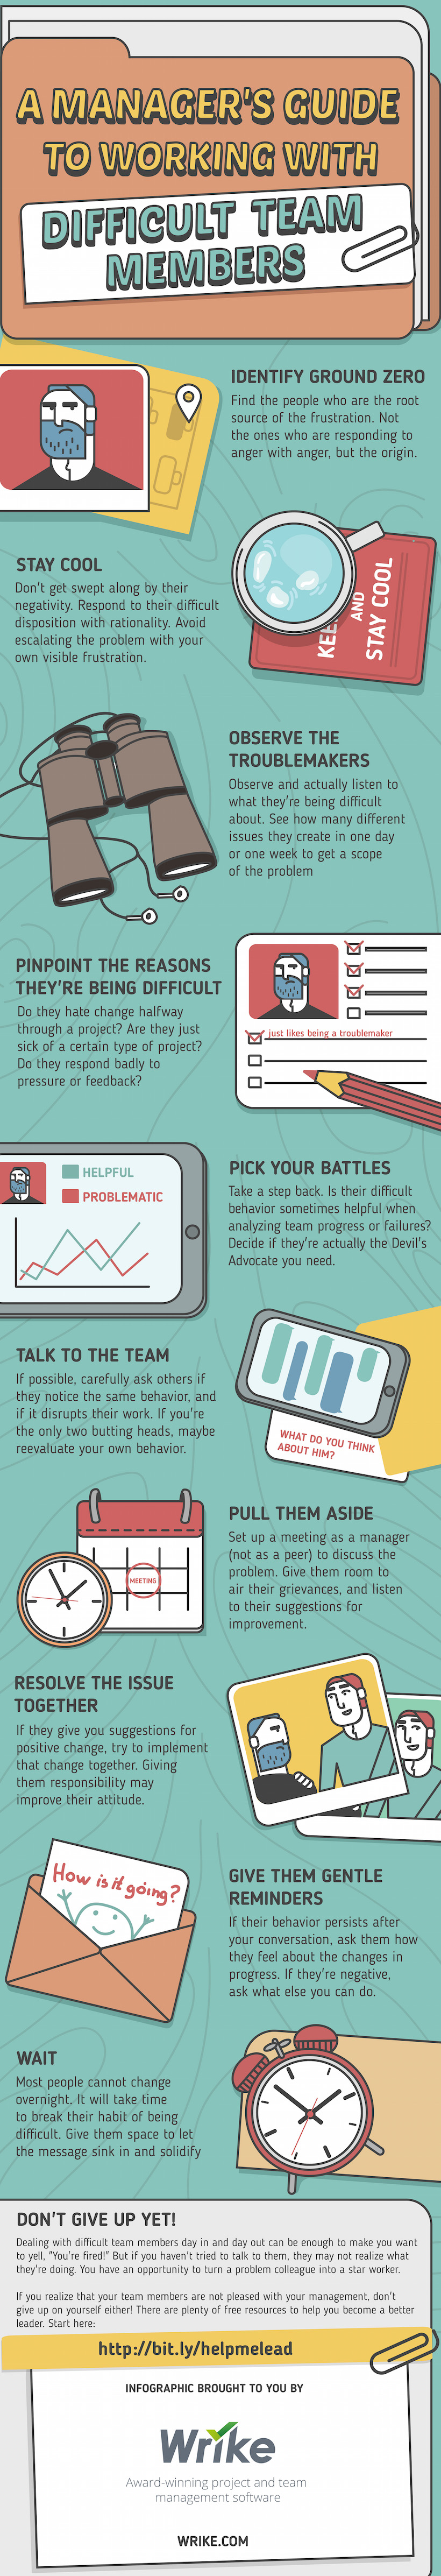 A Manager's Guide to Working with Difficult Team Members